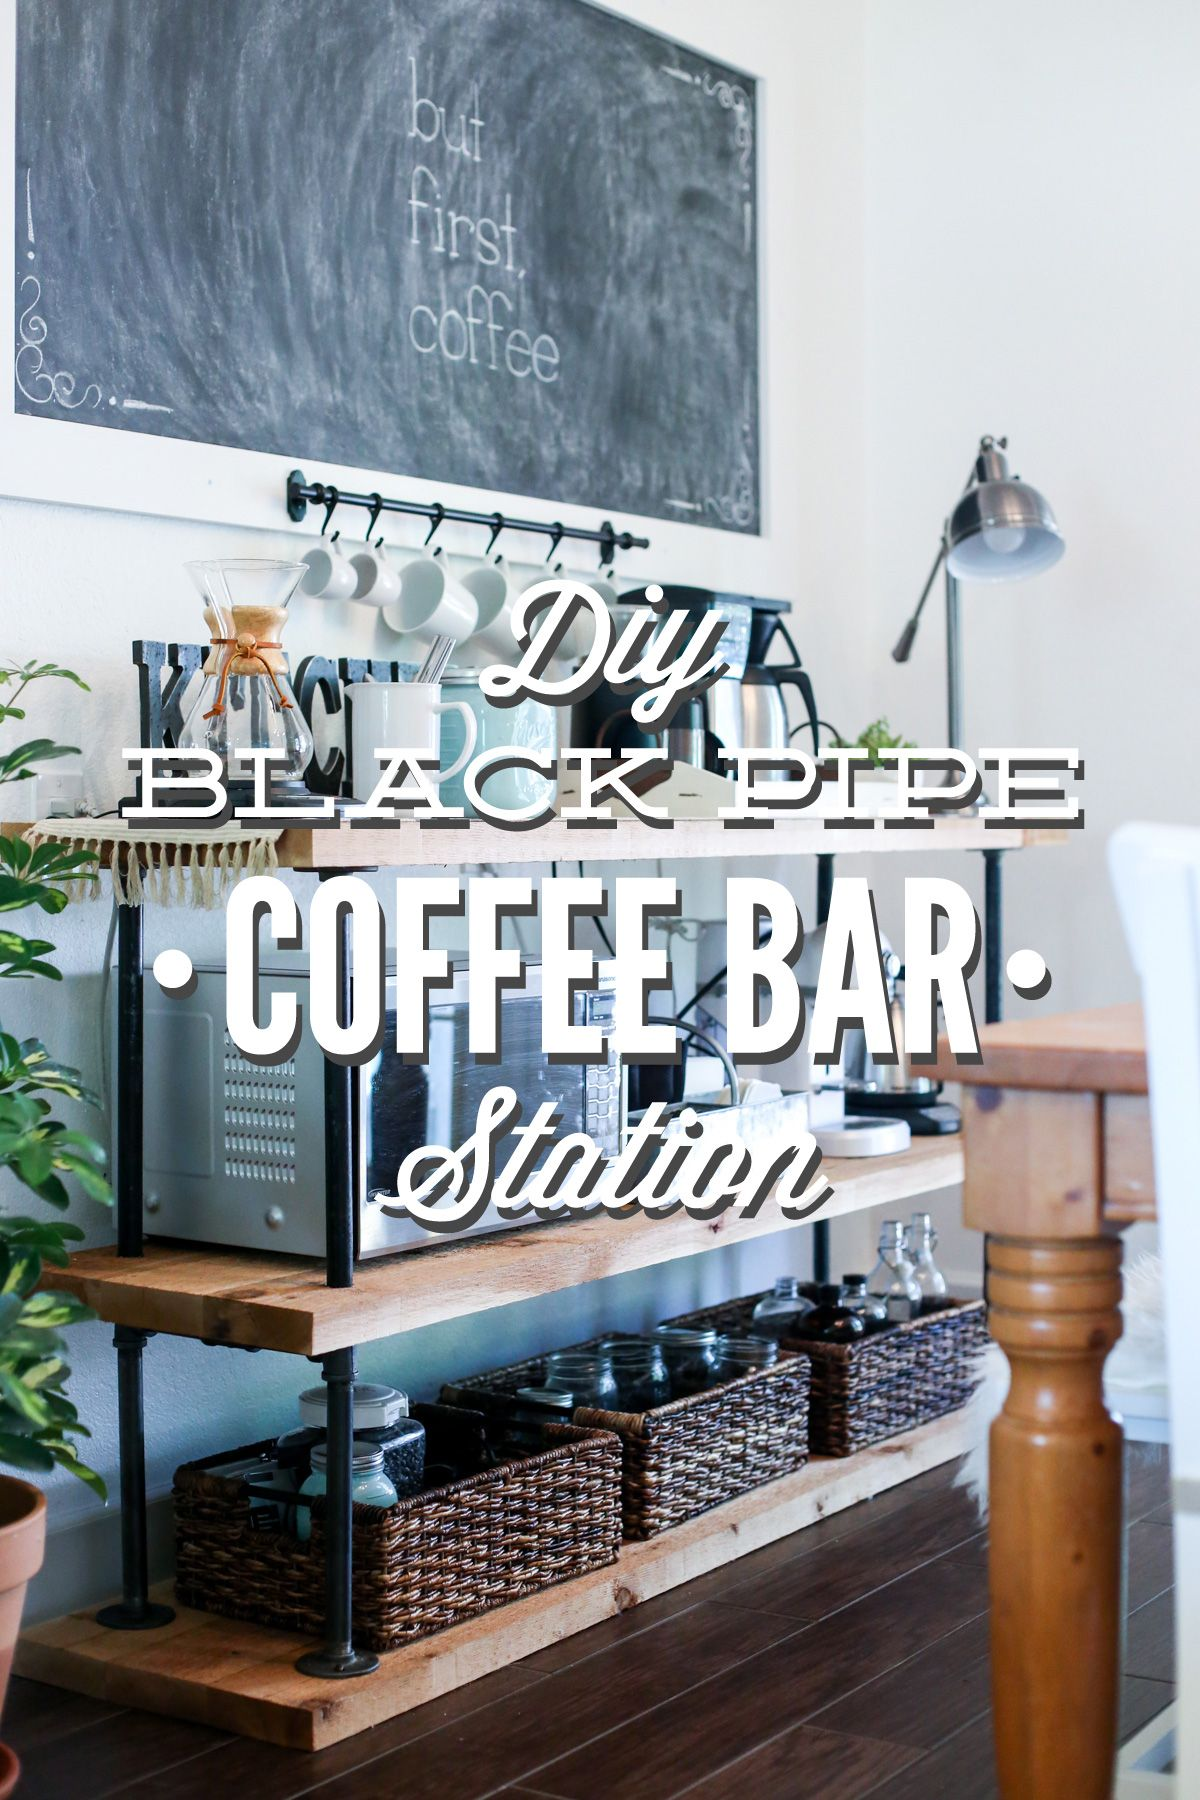 How to build a DIY coffee station at home! Build your own coffee house coffee bar for your home with this tutorial.